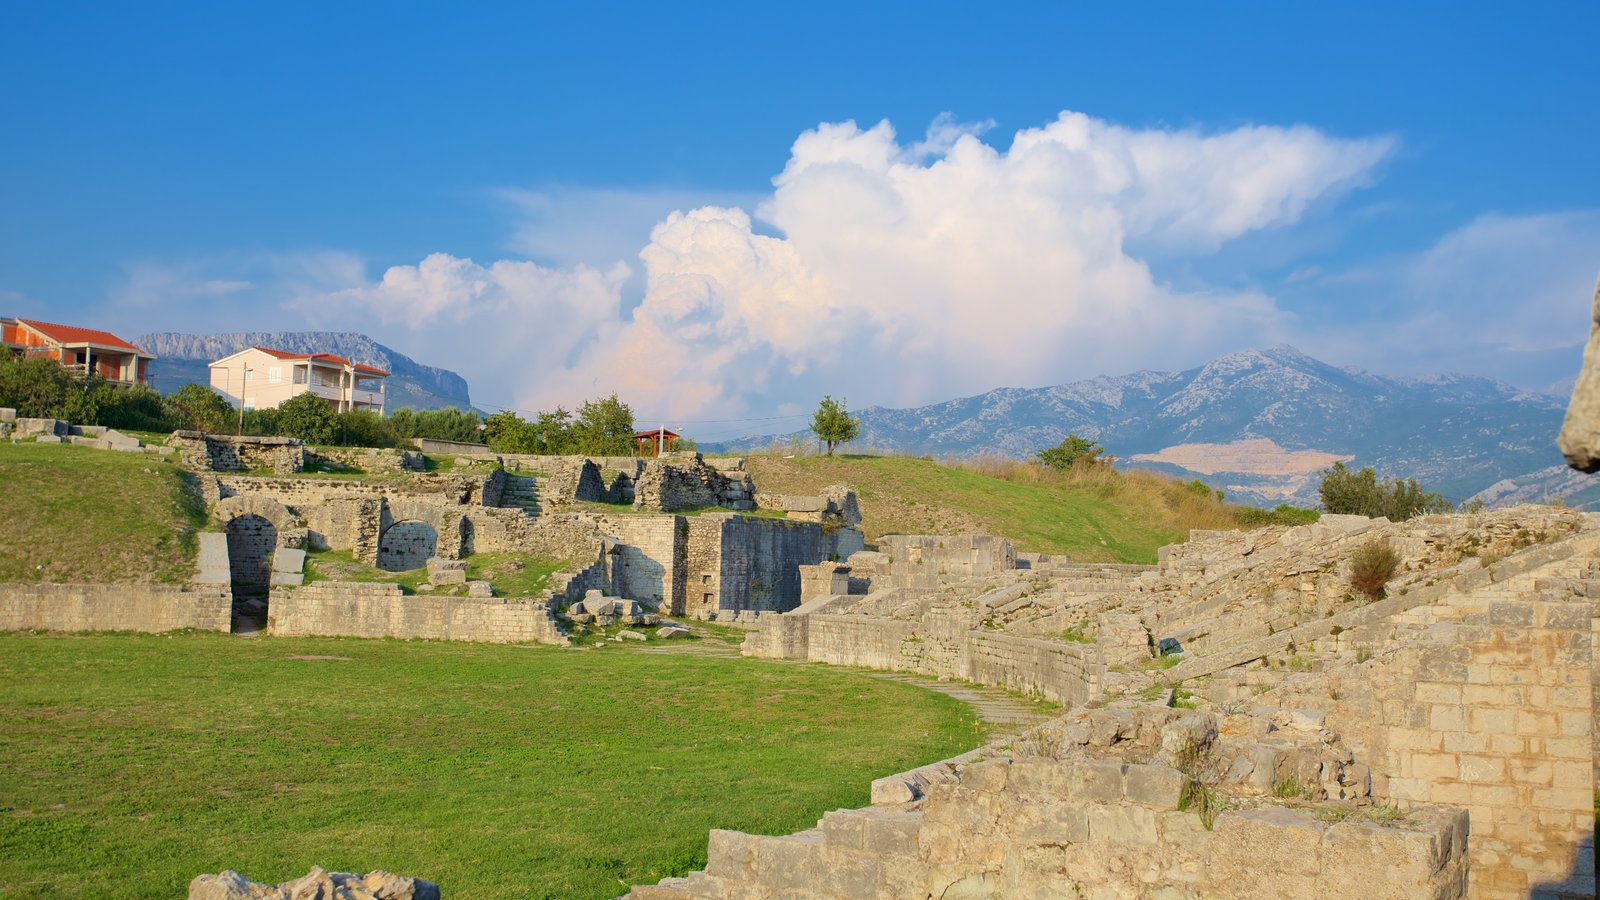 Salona Ruins featuring a ruin, mountains and tranquil scenes